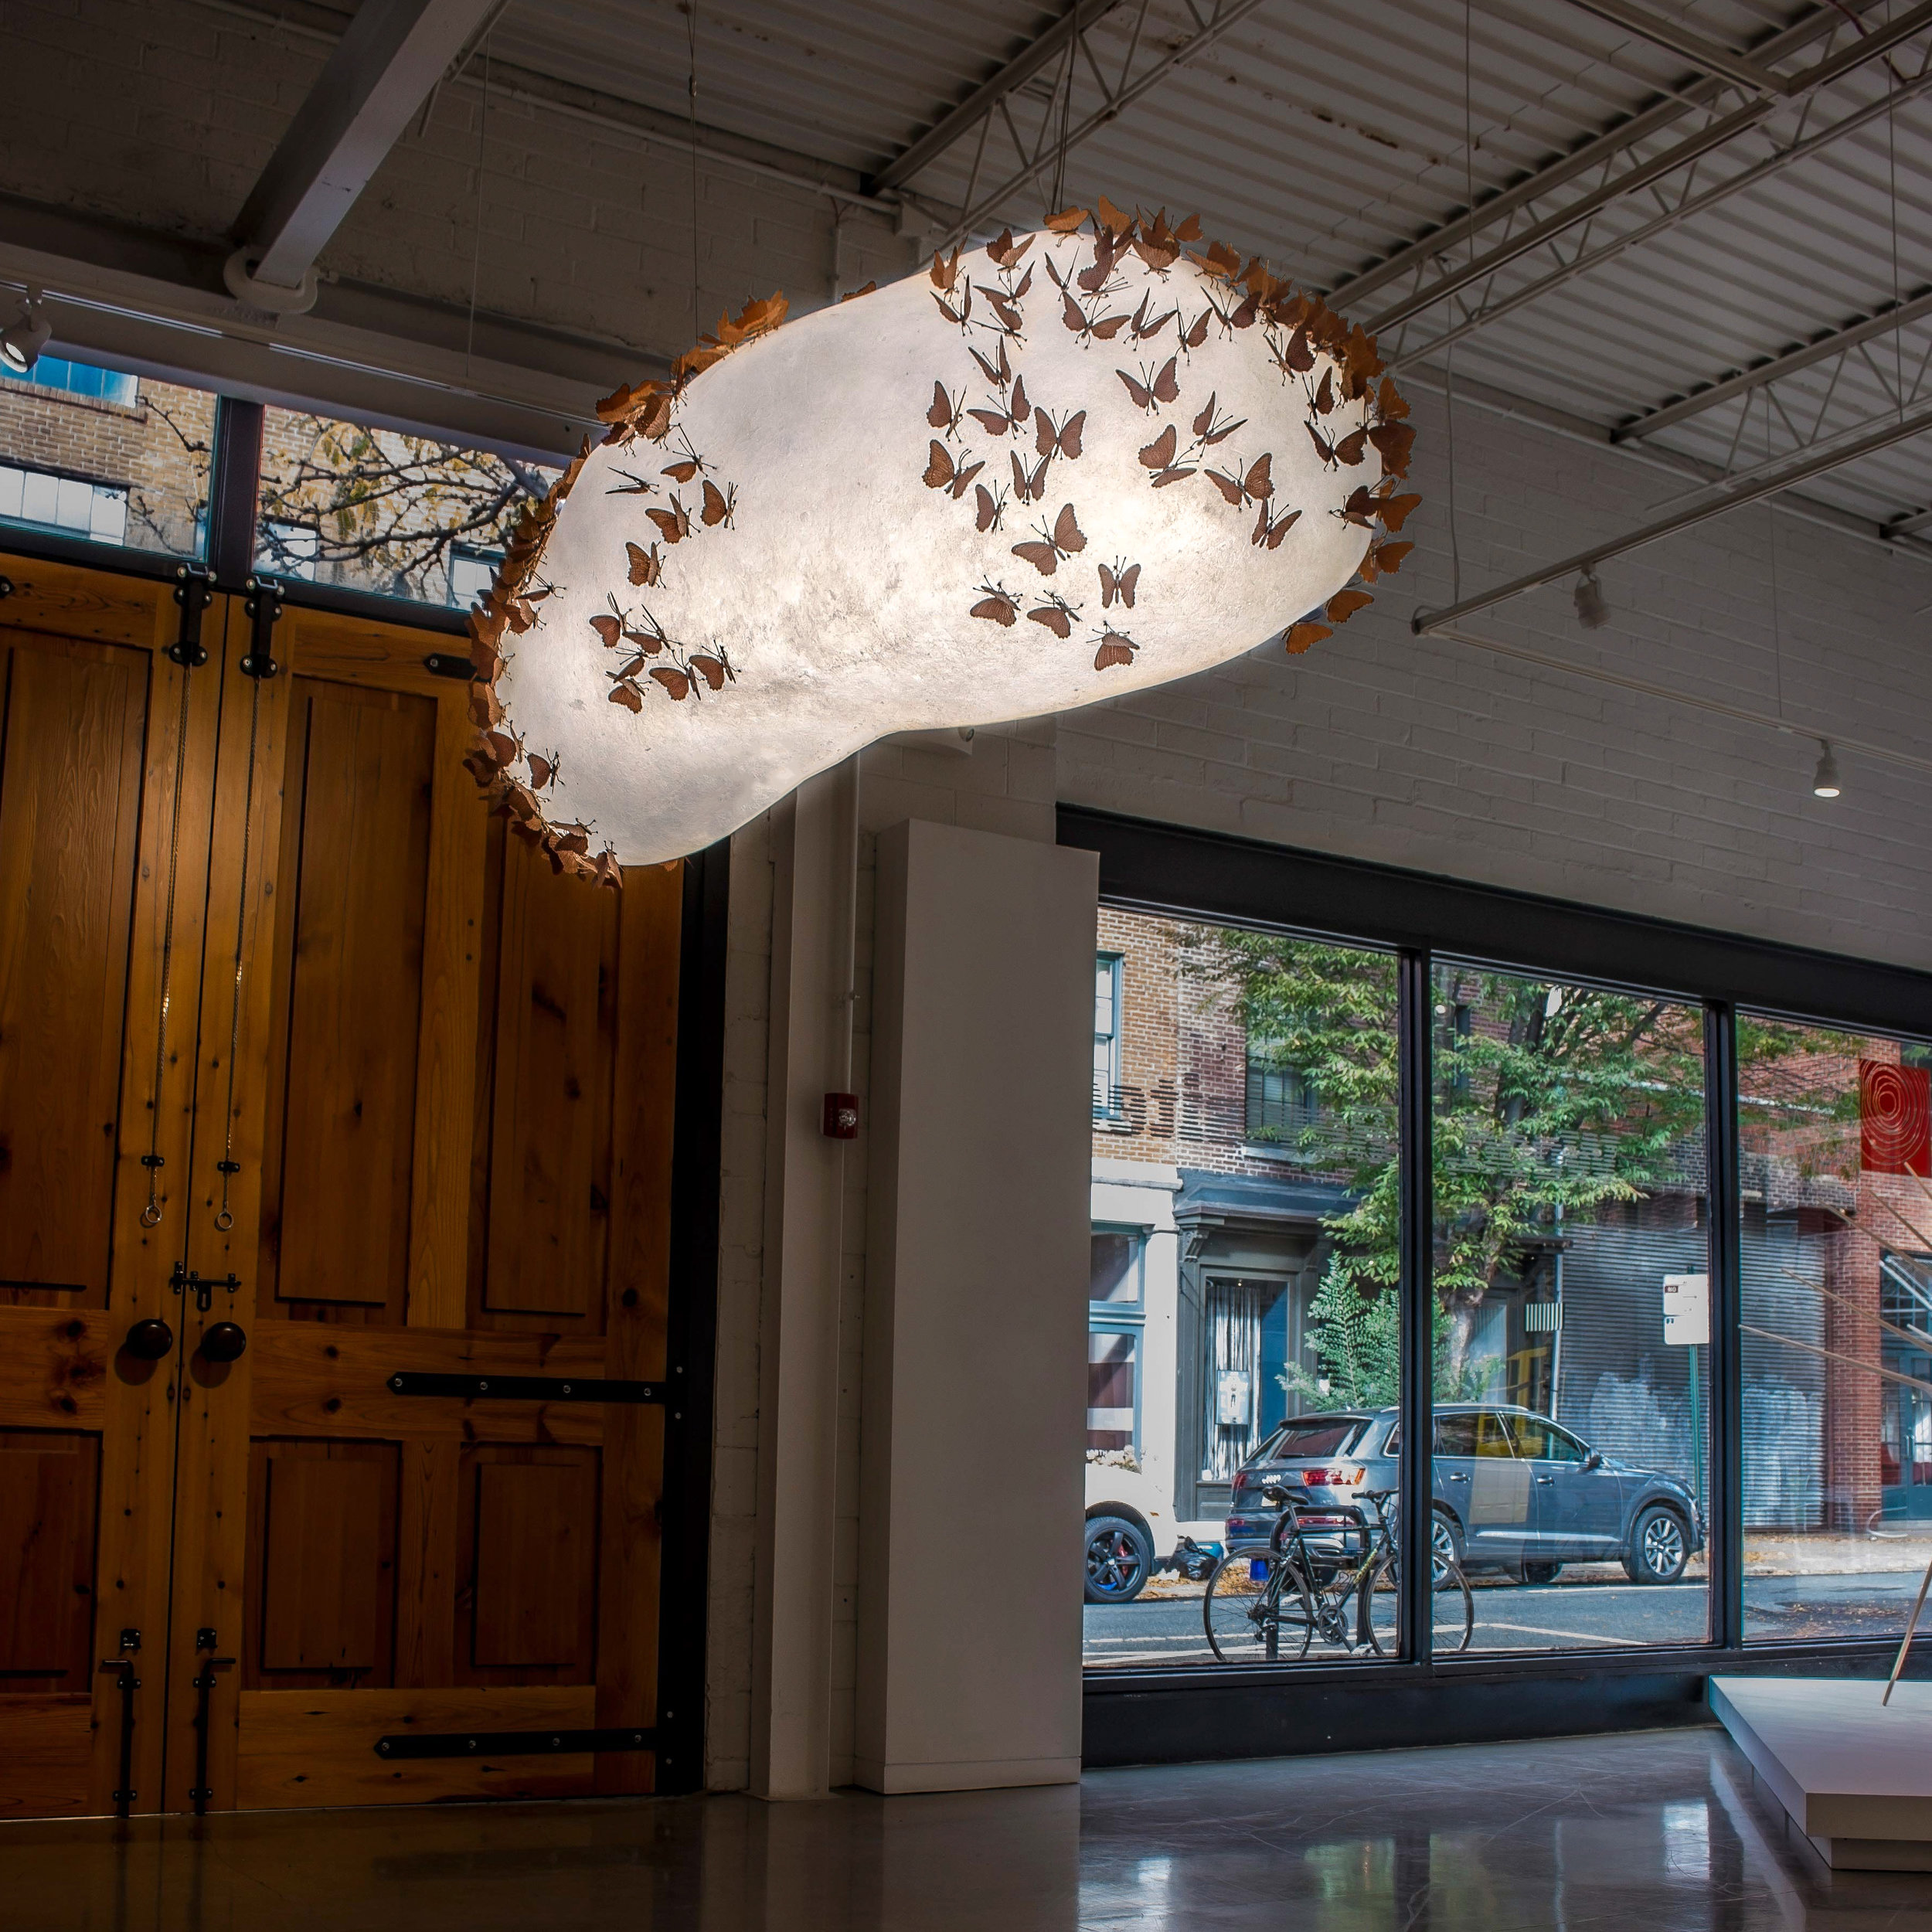 Butterfly Asteroid,  Center for Art in Wood, Philadelphia, Pennsylvania, October 2016